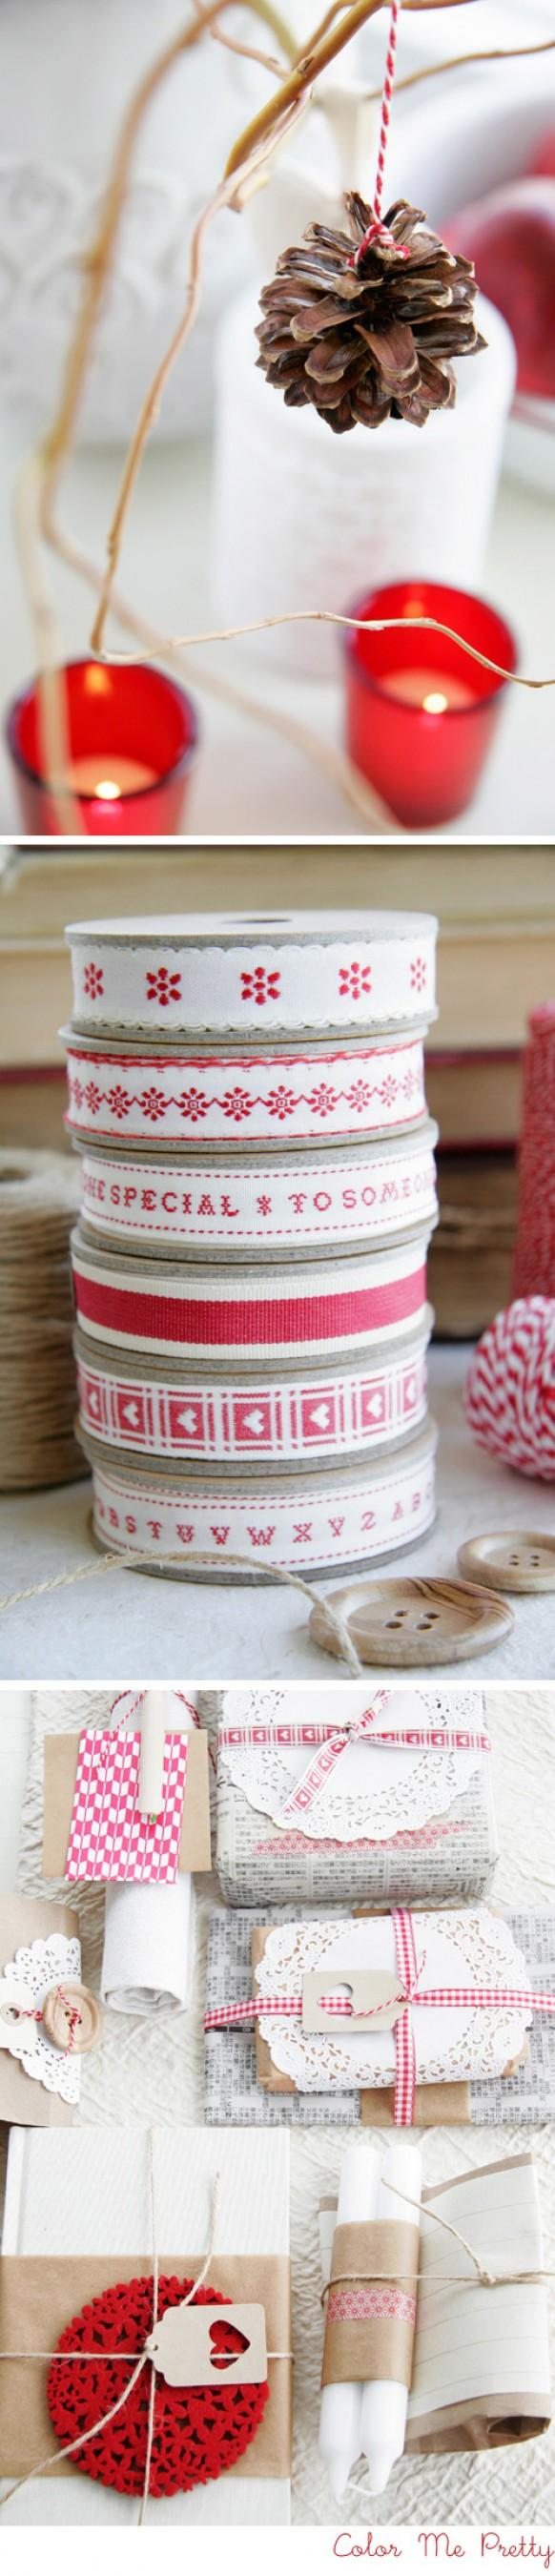 Diy Wedding Gift Wrapping Ideas : diy-christmas-gift-wrapping-ideas-handmade-and-easy-wedding-gift-wrap ...